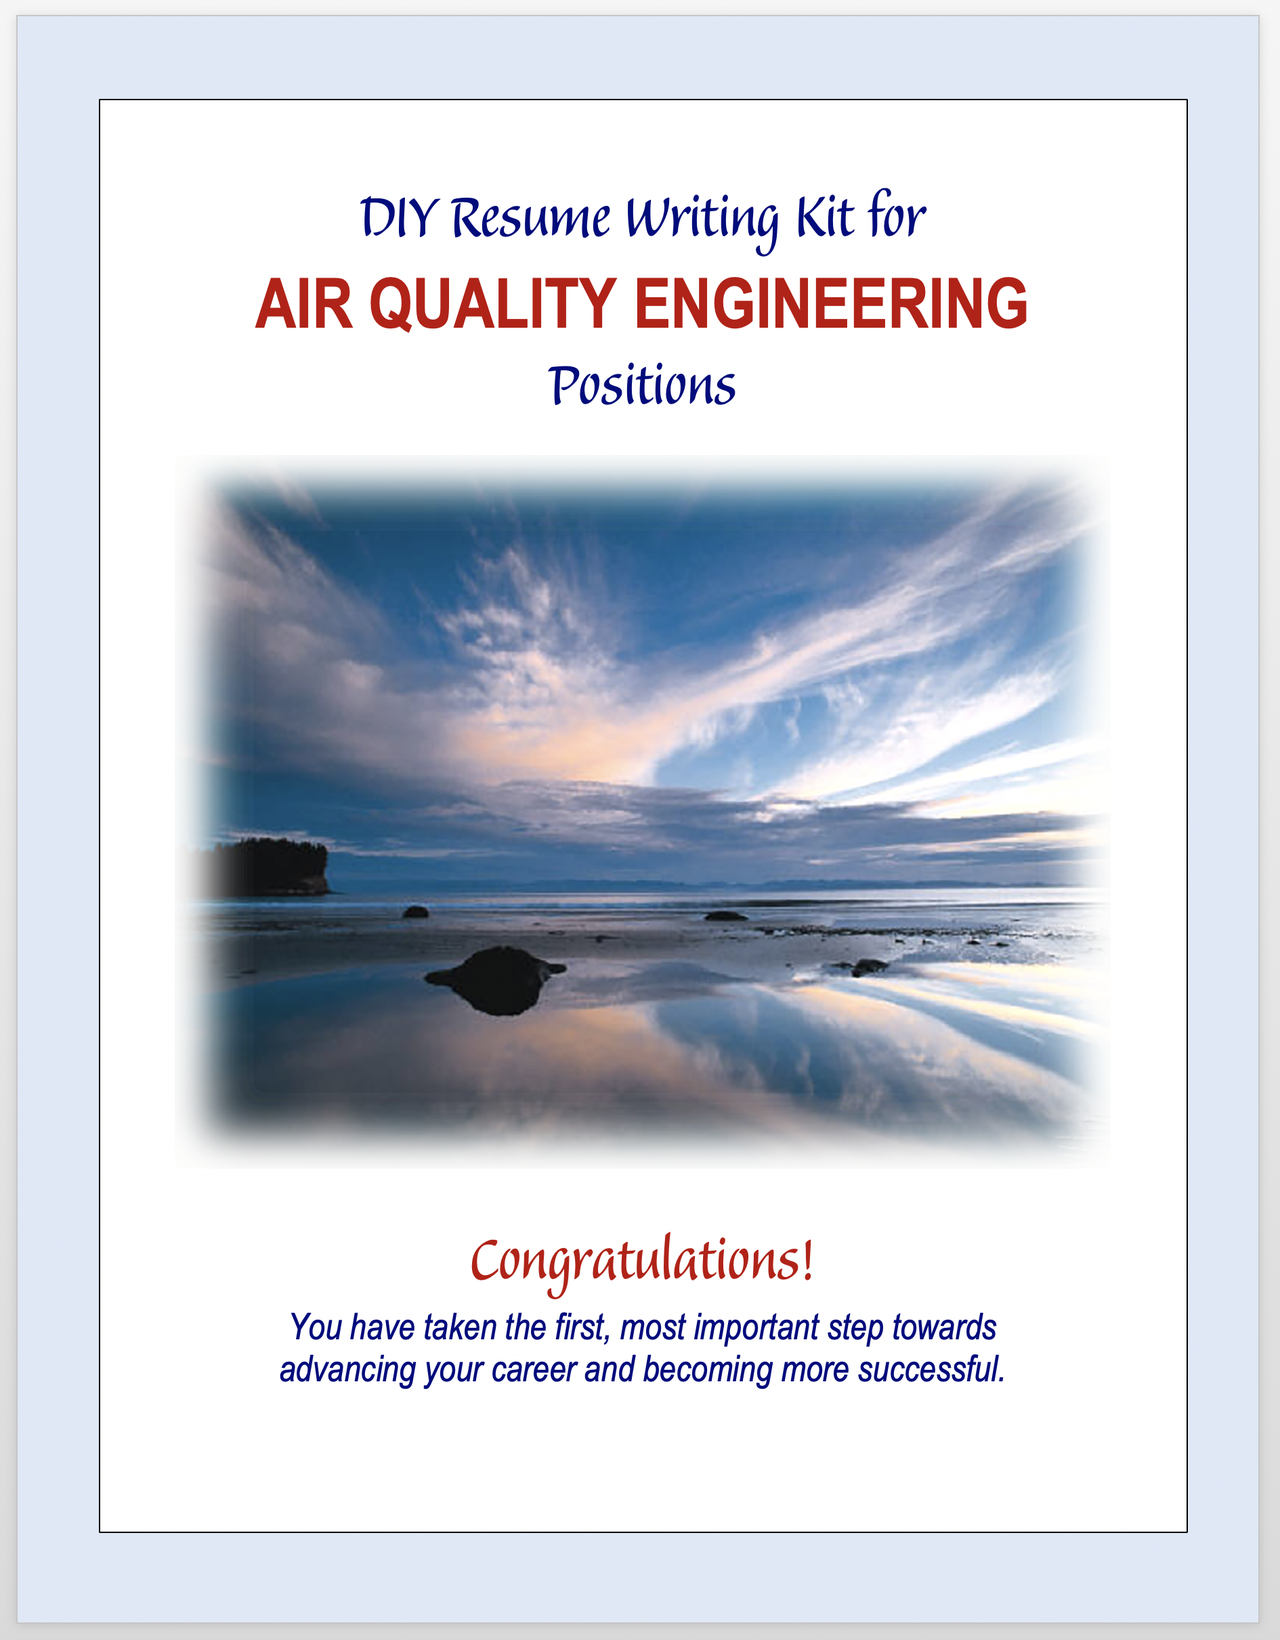 air quality engineering.png